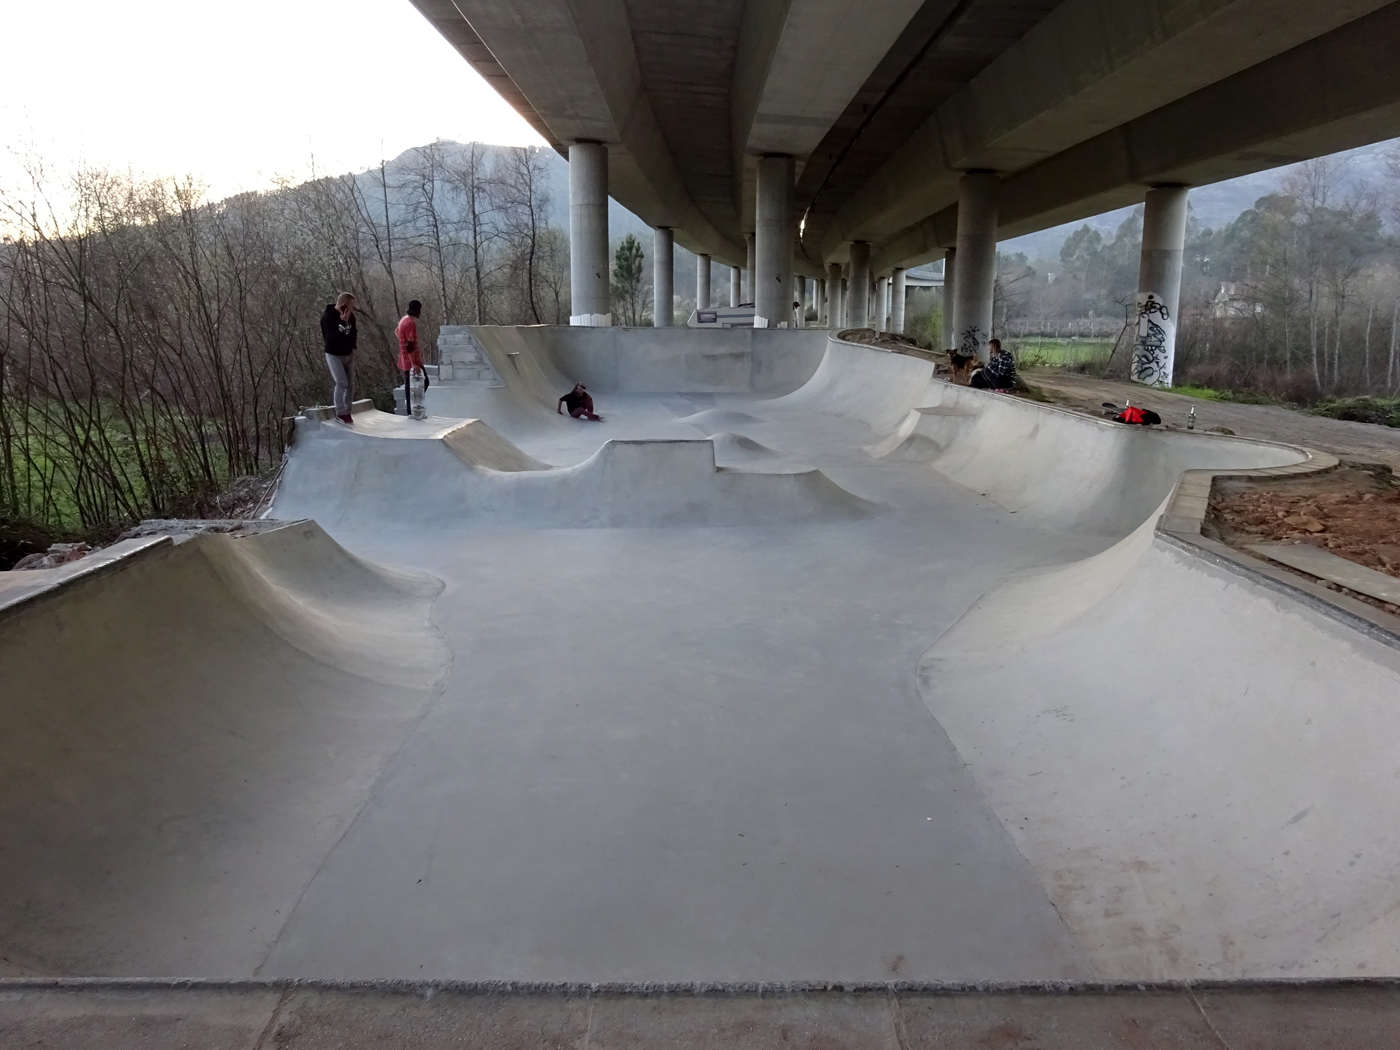 berber brüder how we skated 20 different countries in less than a